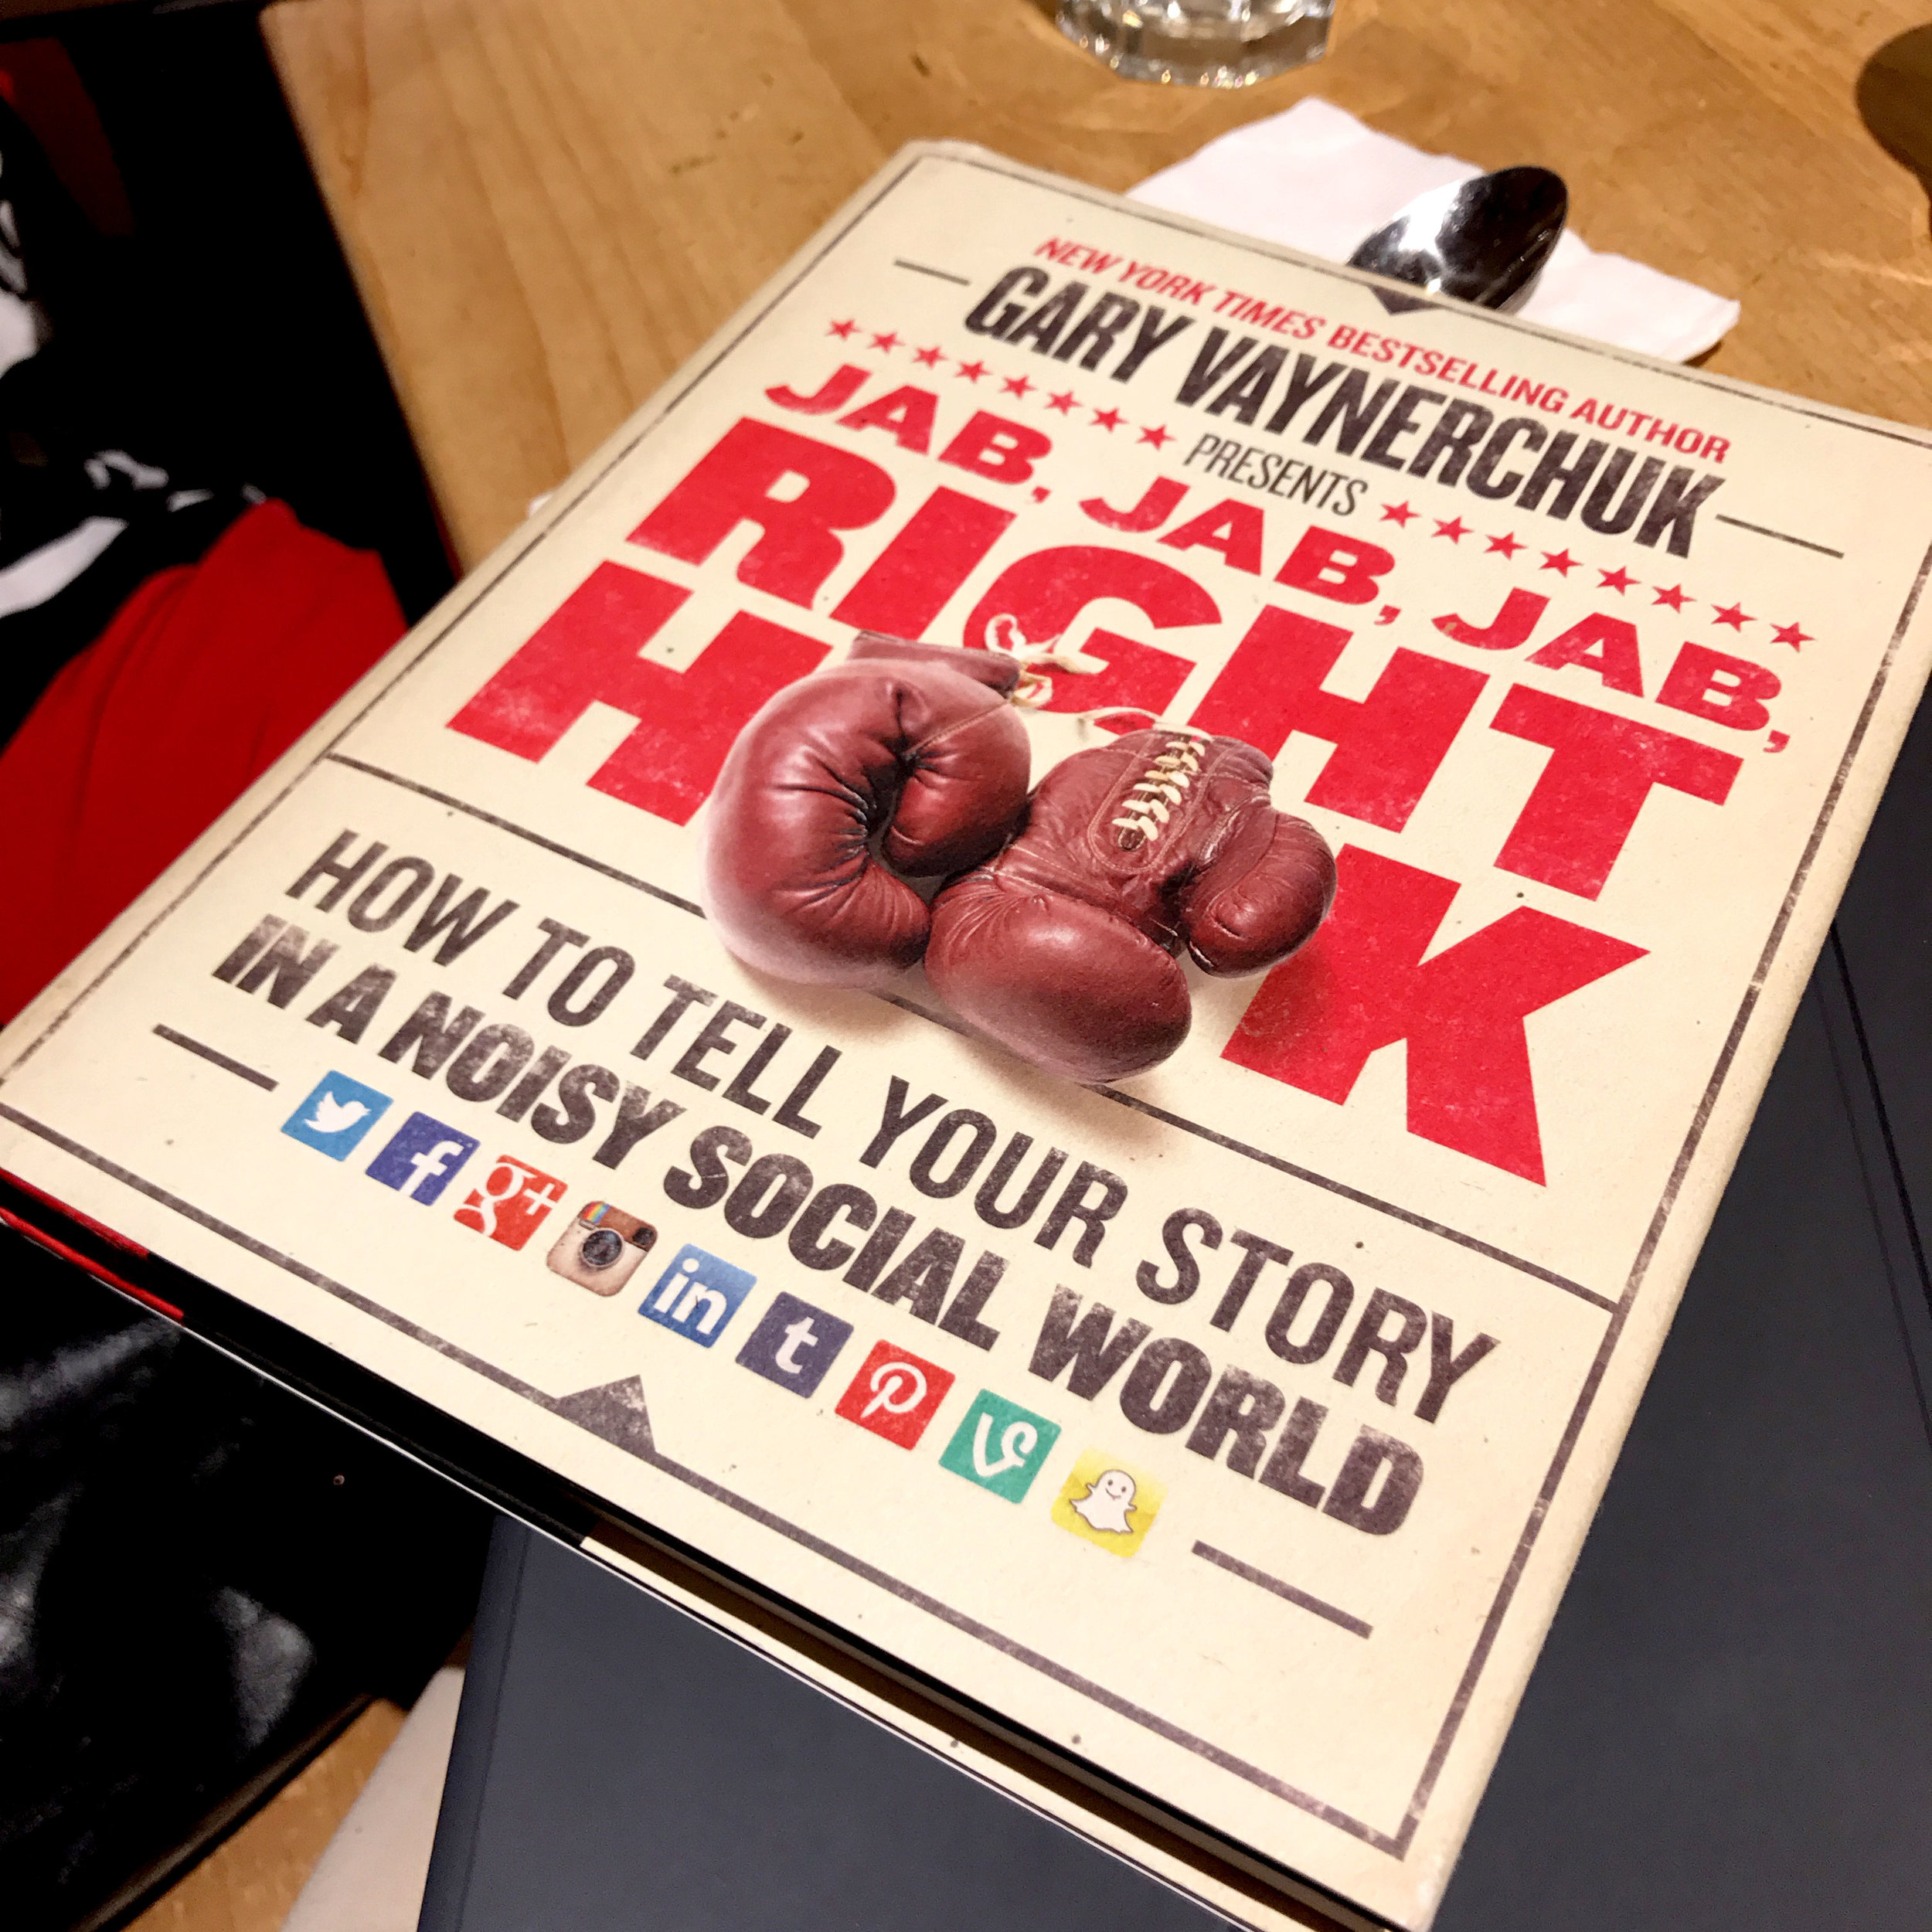 Gary-Vaynerchuk-Jab-Jab-Jab-Right-Hook-Book